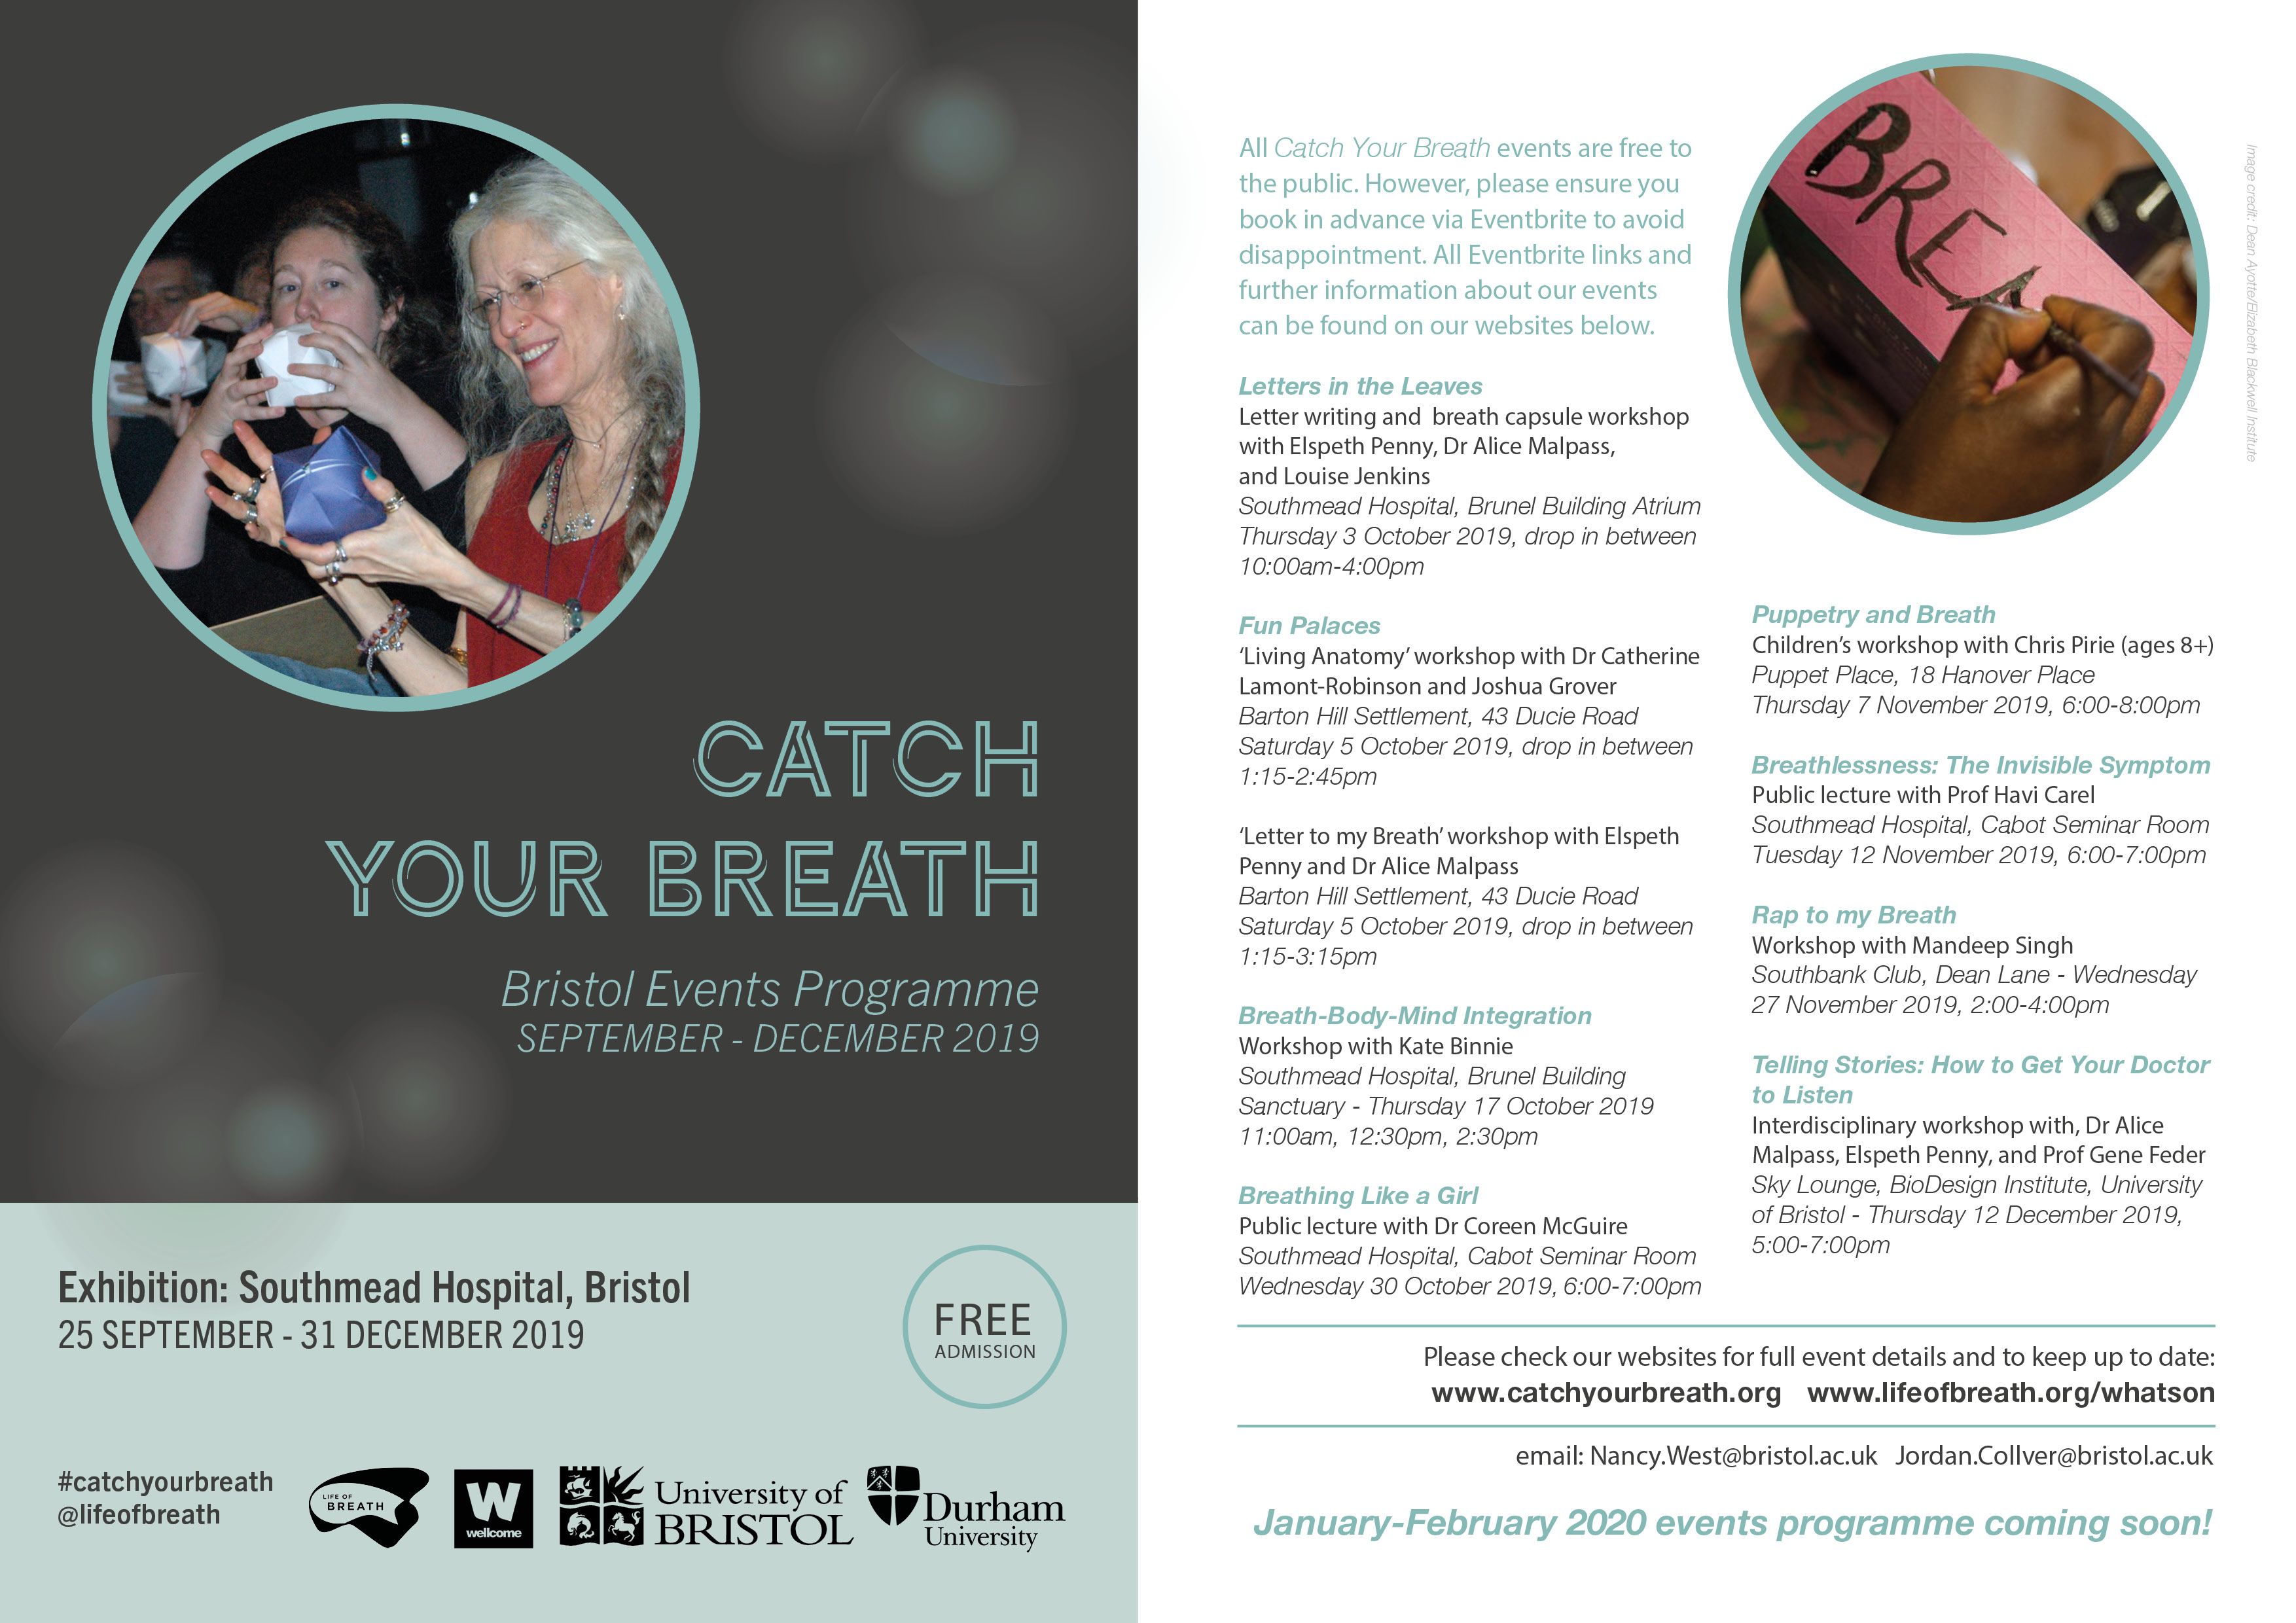 Catch Your Breath 2019 events programme (Bristol).jpg